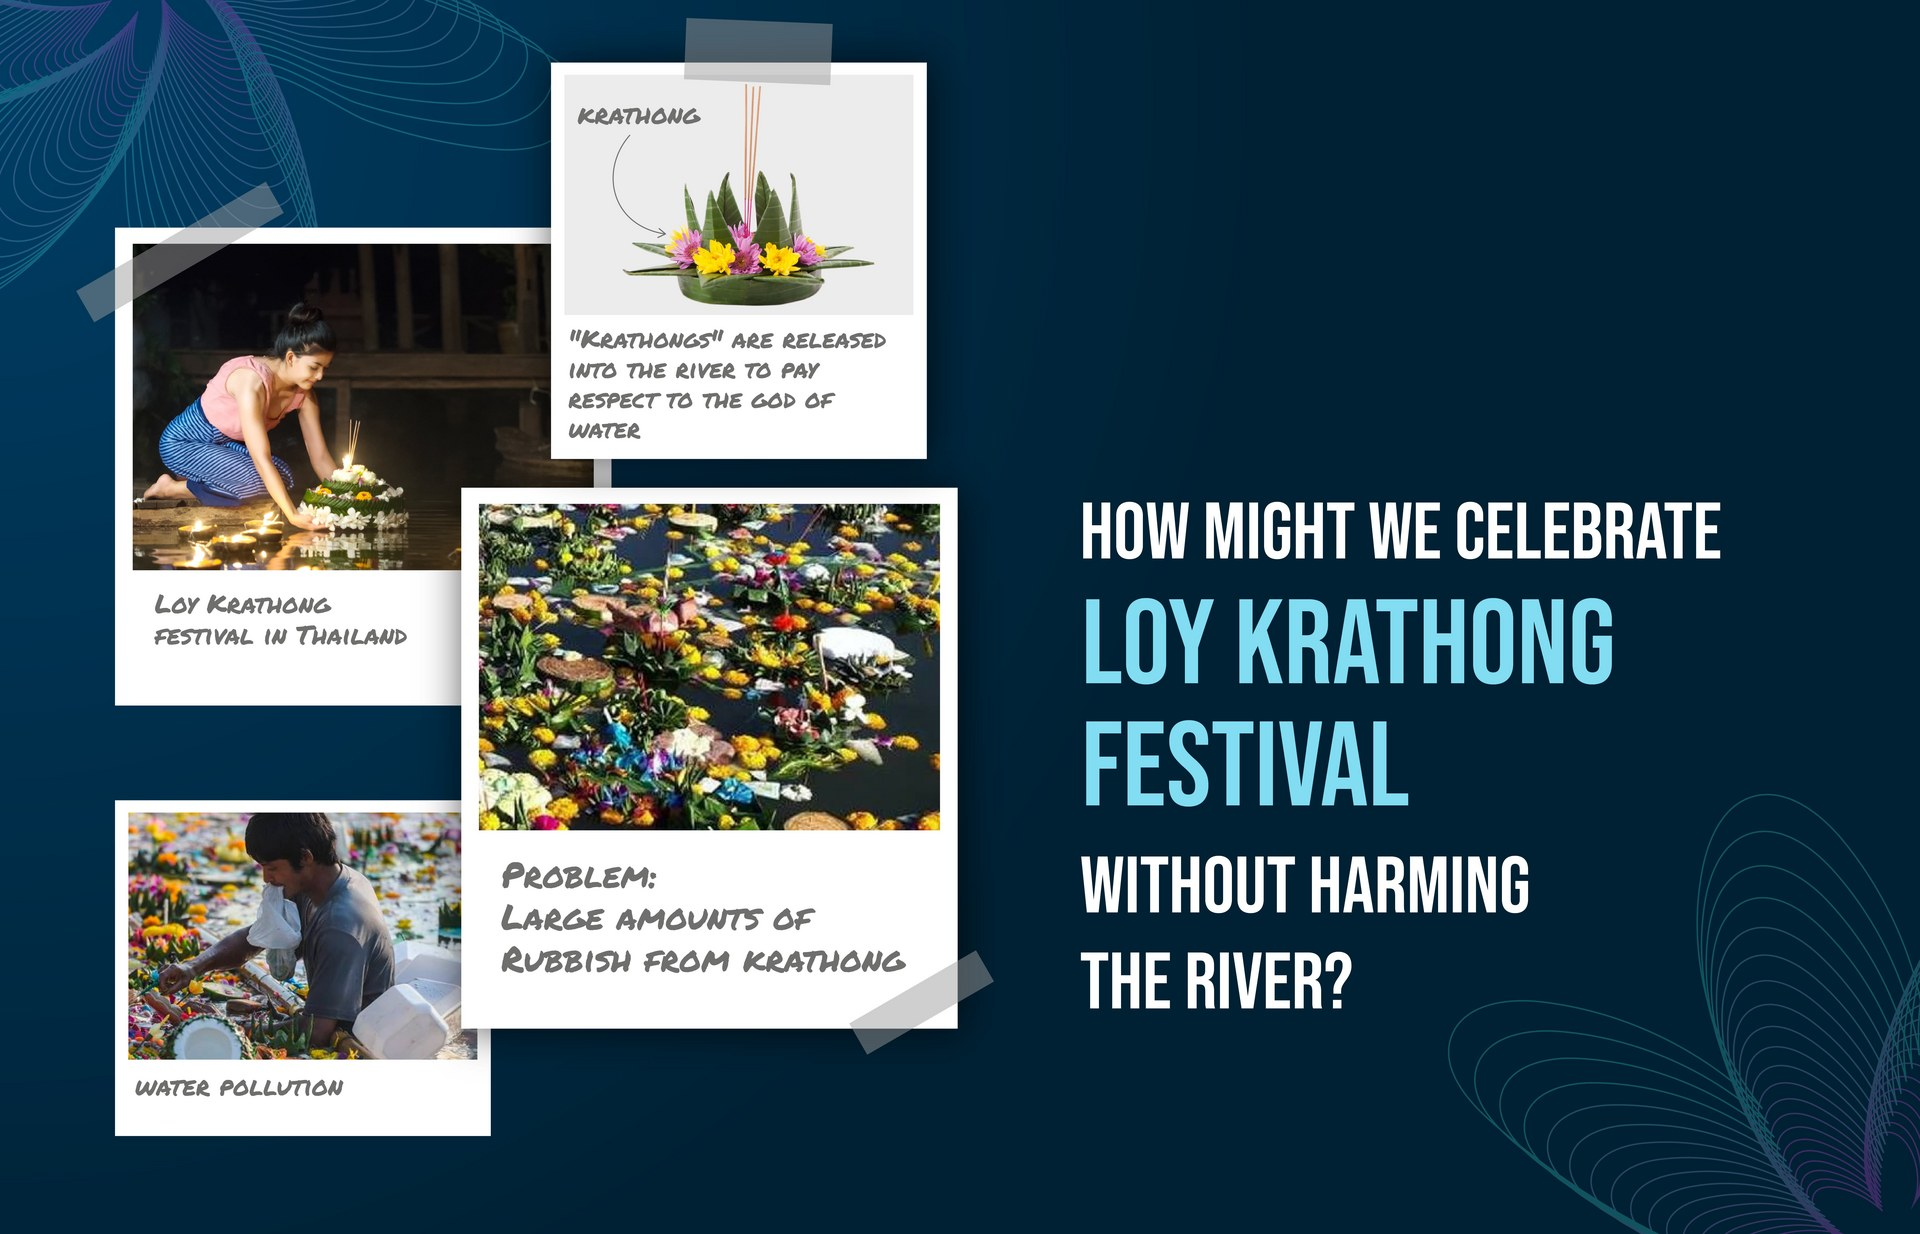 What's Loy Krathong Festival? — Inspired by the tradition, this leads a problem statement